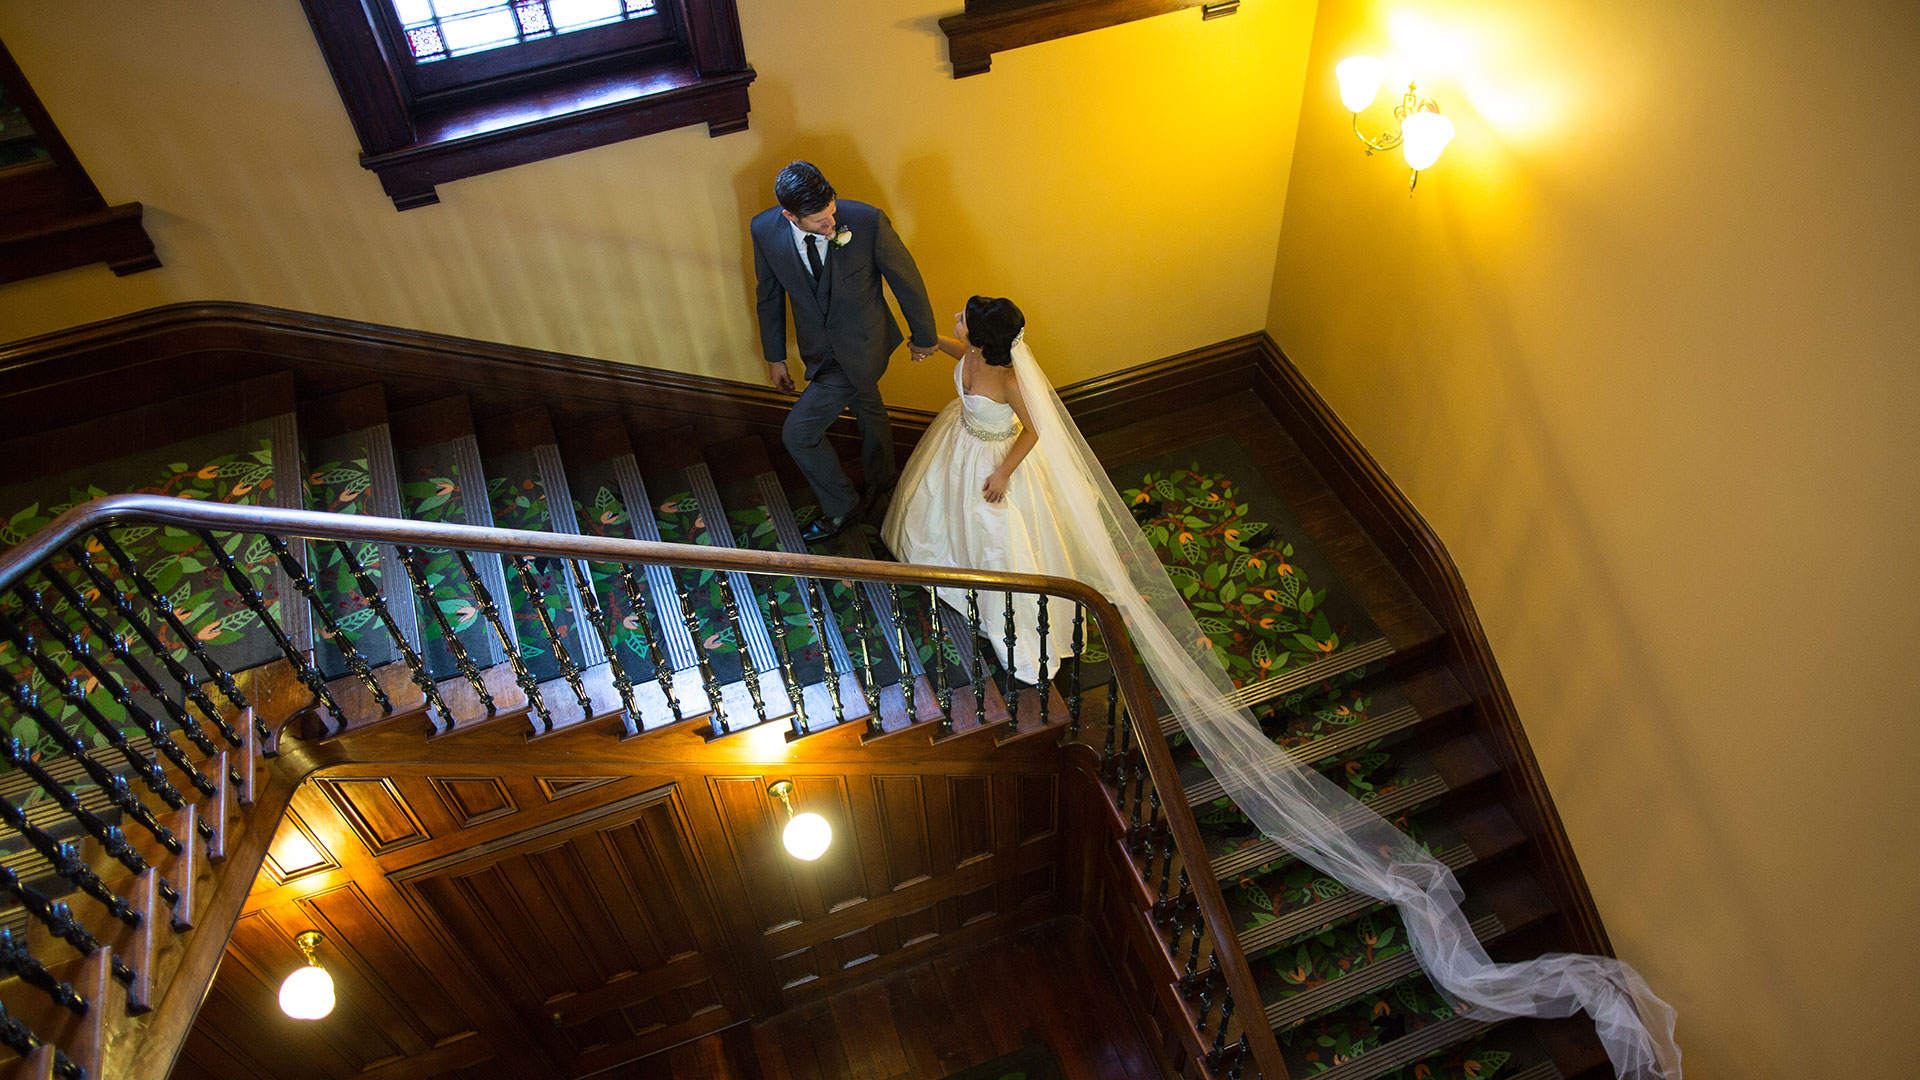 Married couple ascending the stairs